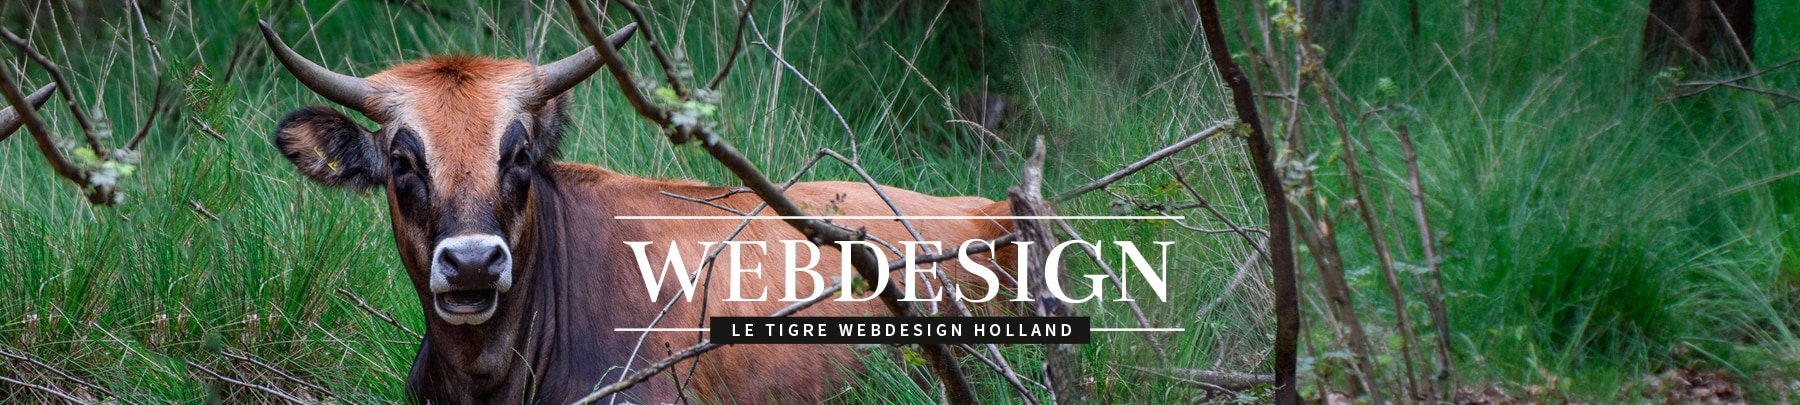 Contact LeTigre Webdesign Holland